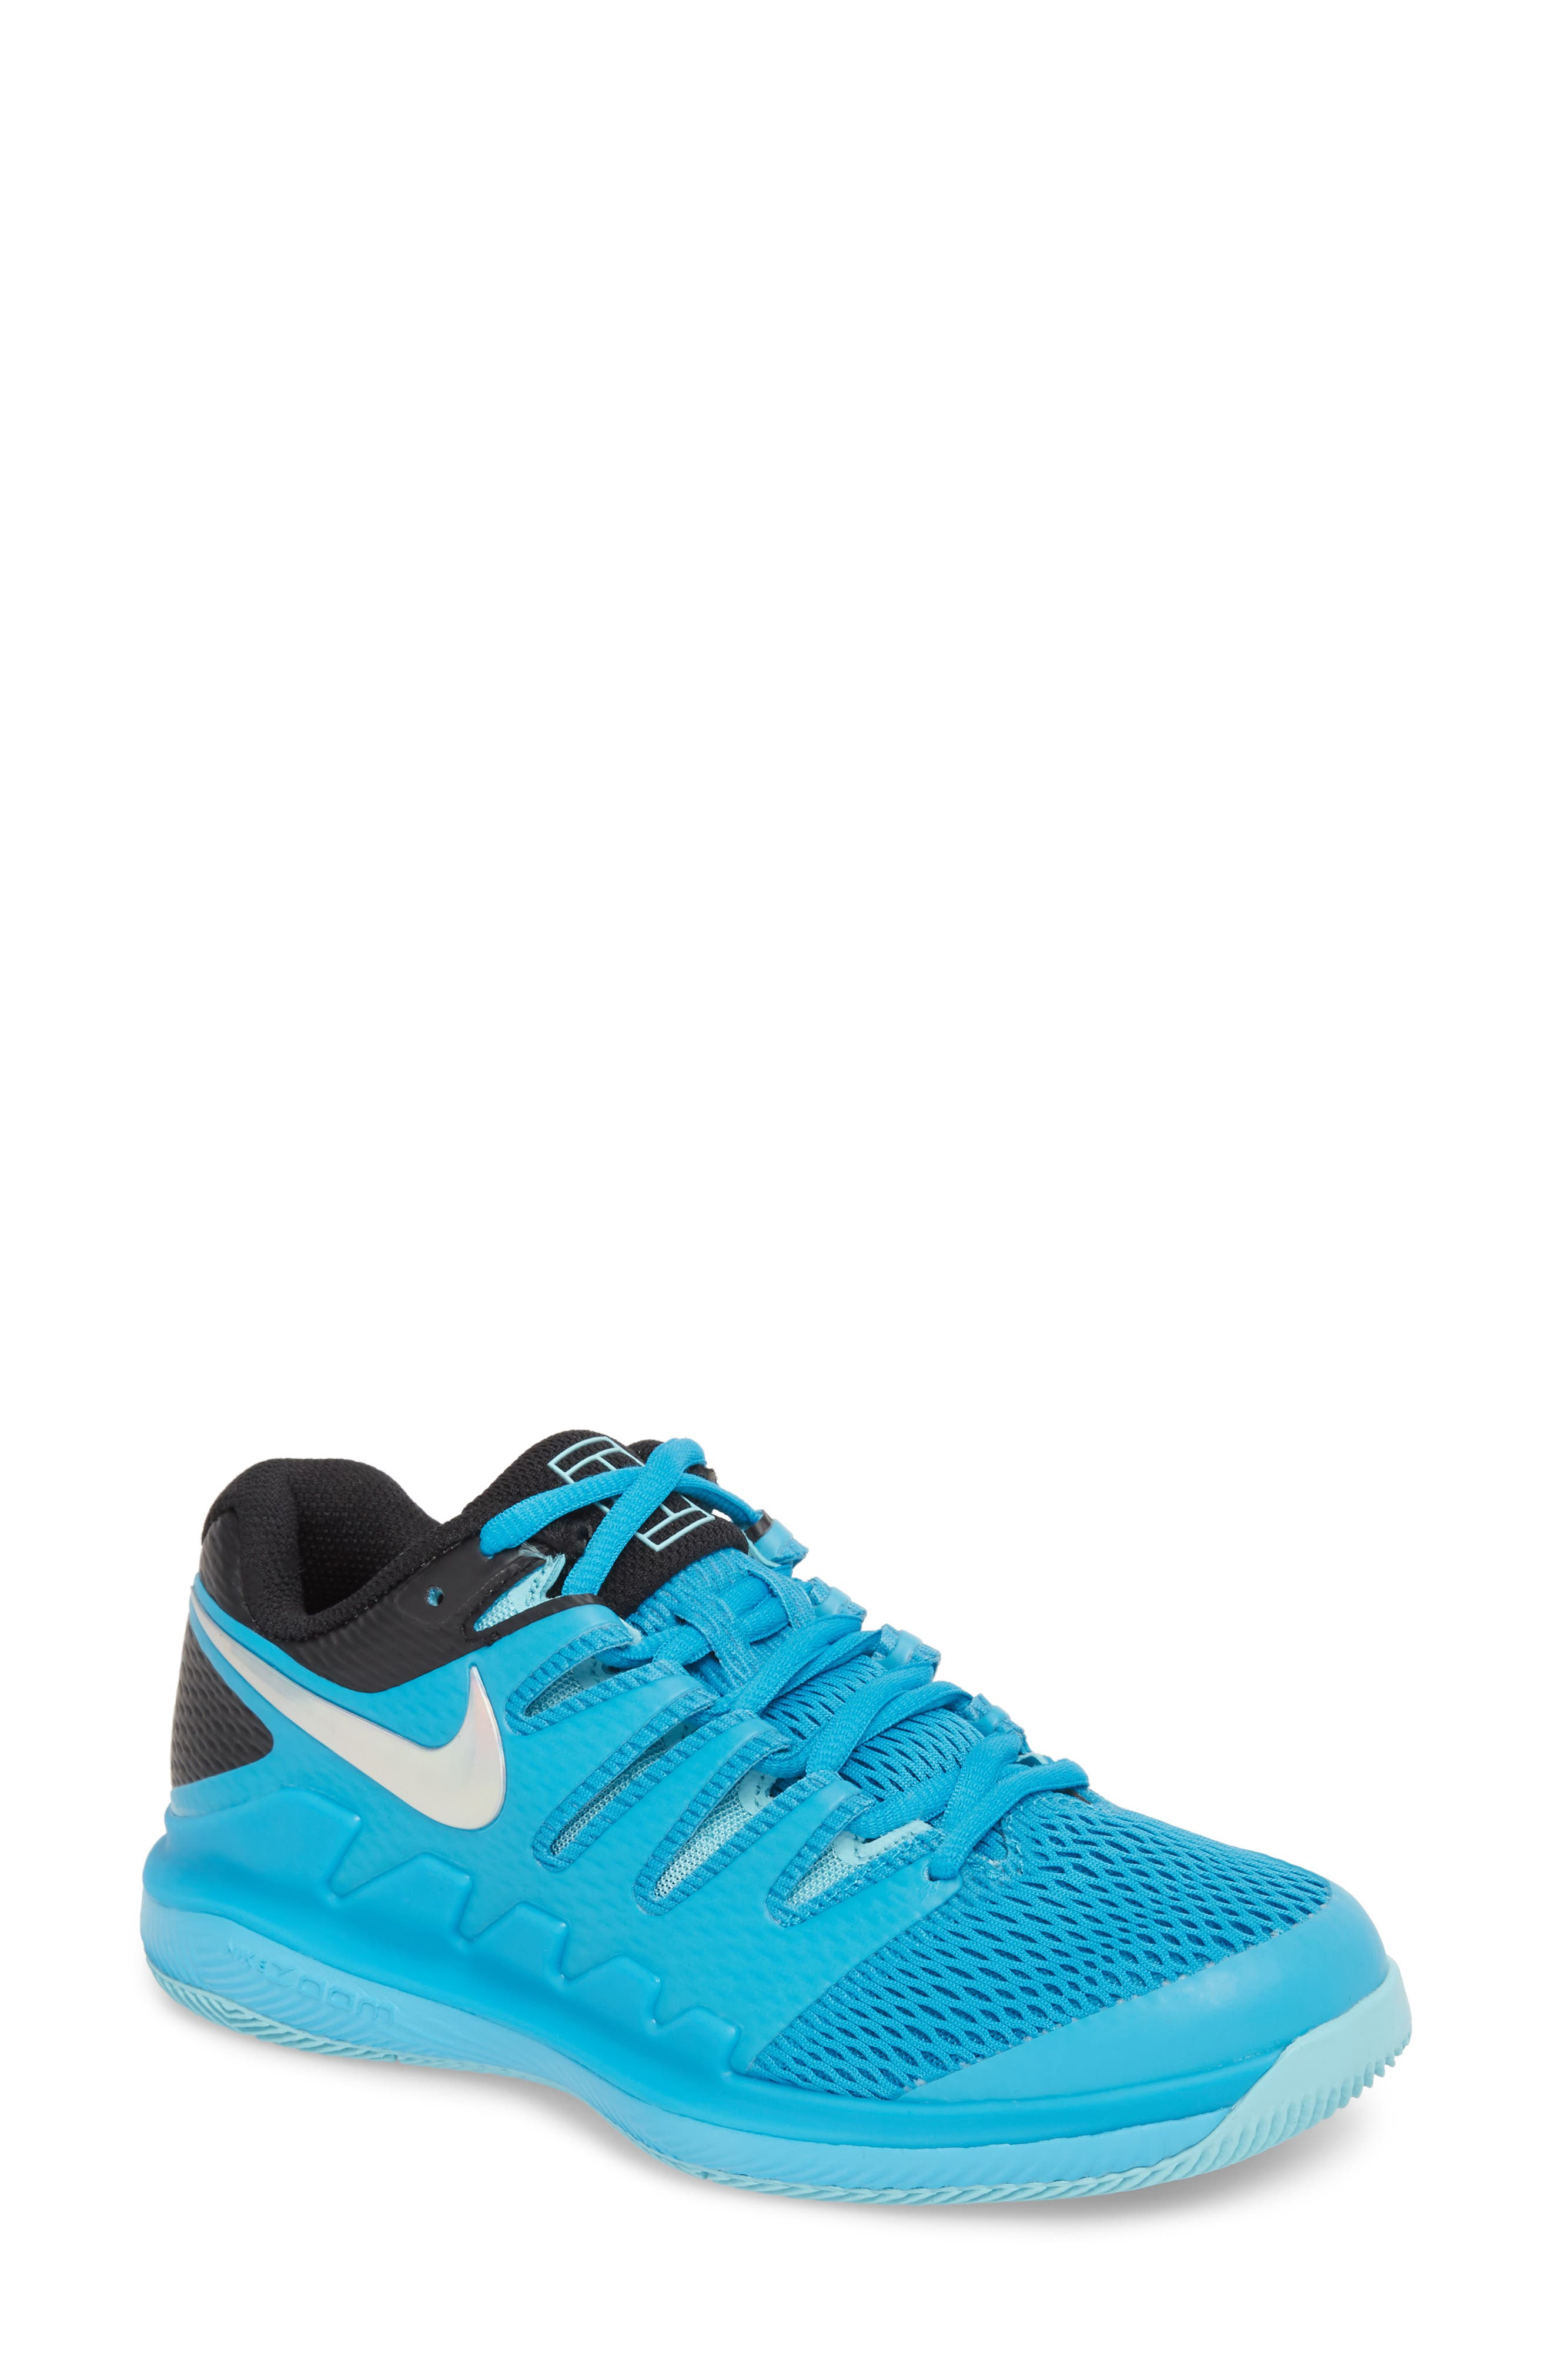 Nike Air Zoom Vapor X Tennis Shoe (Women)